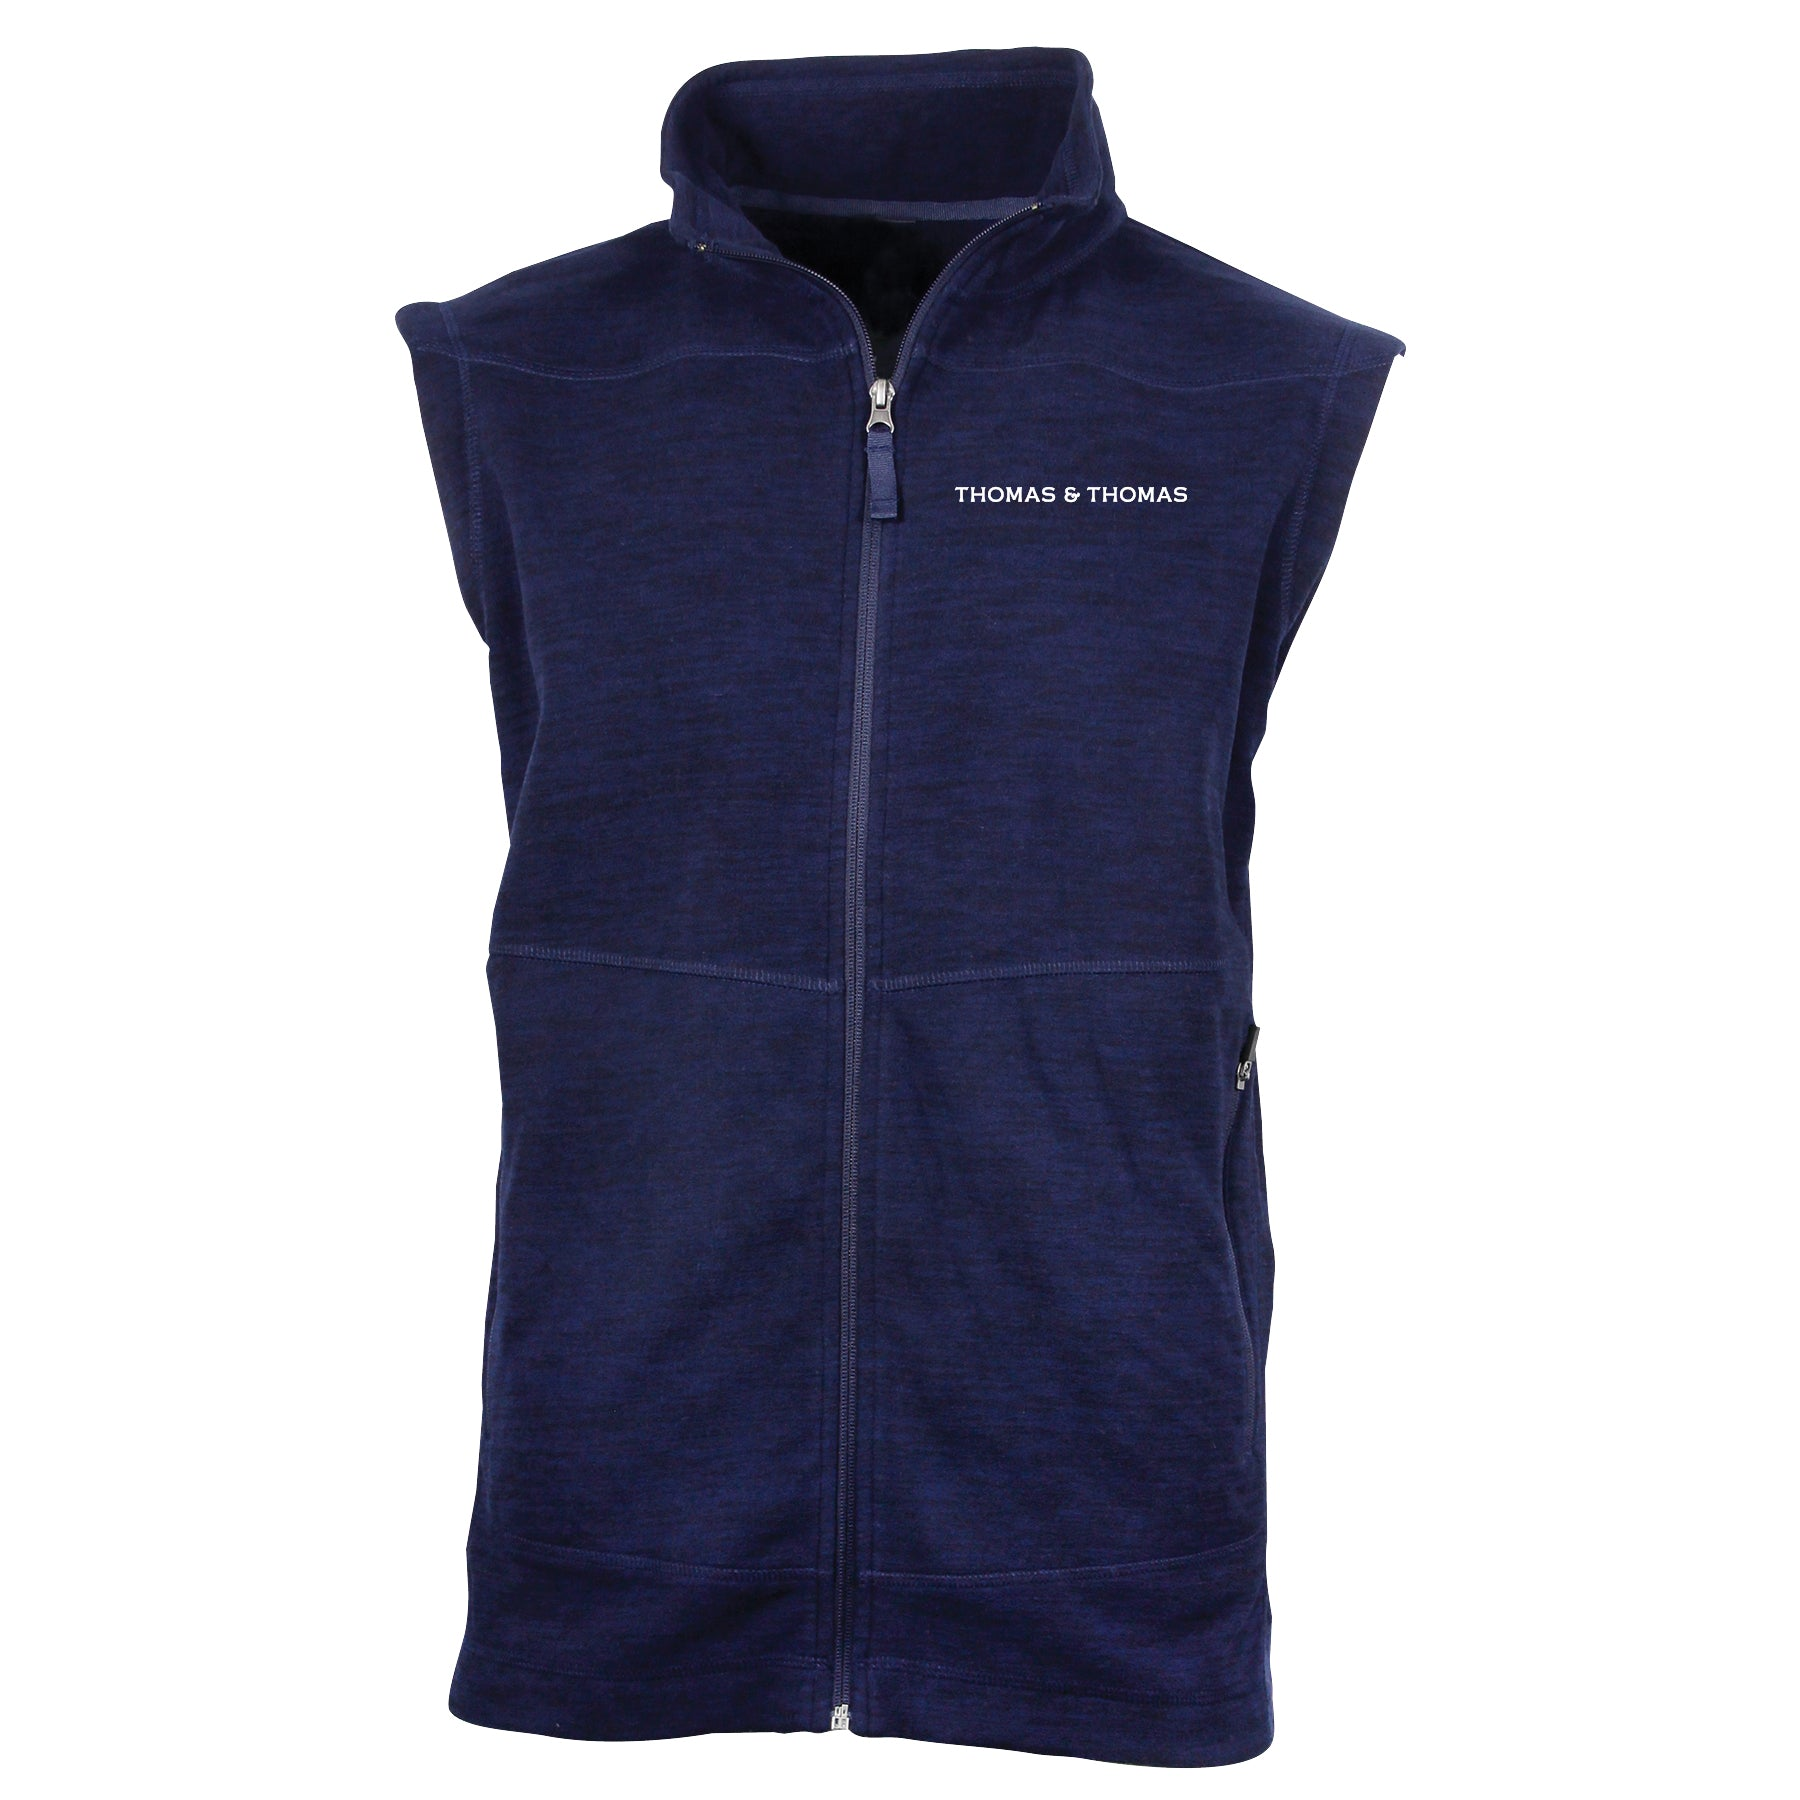 T&T Midnight Navy Heather Fleece Vest